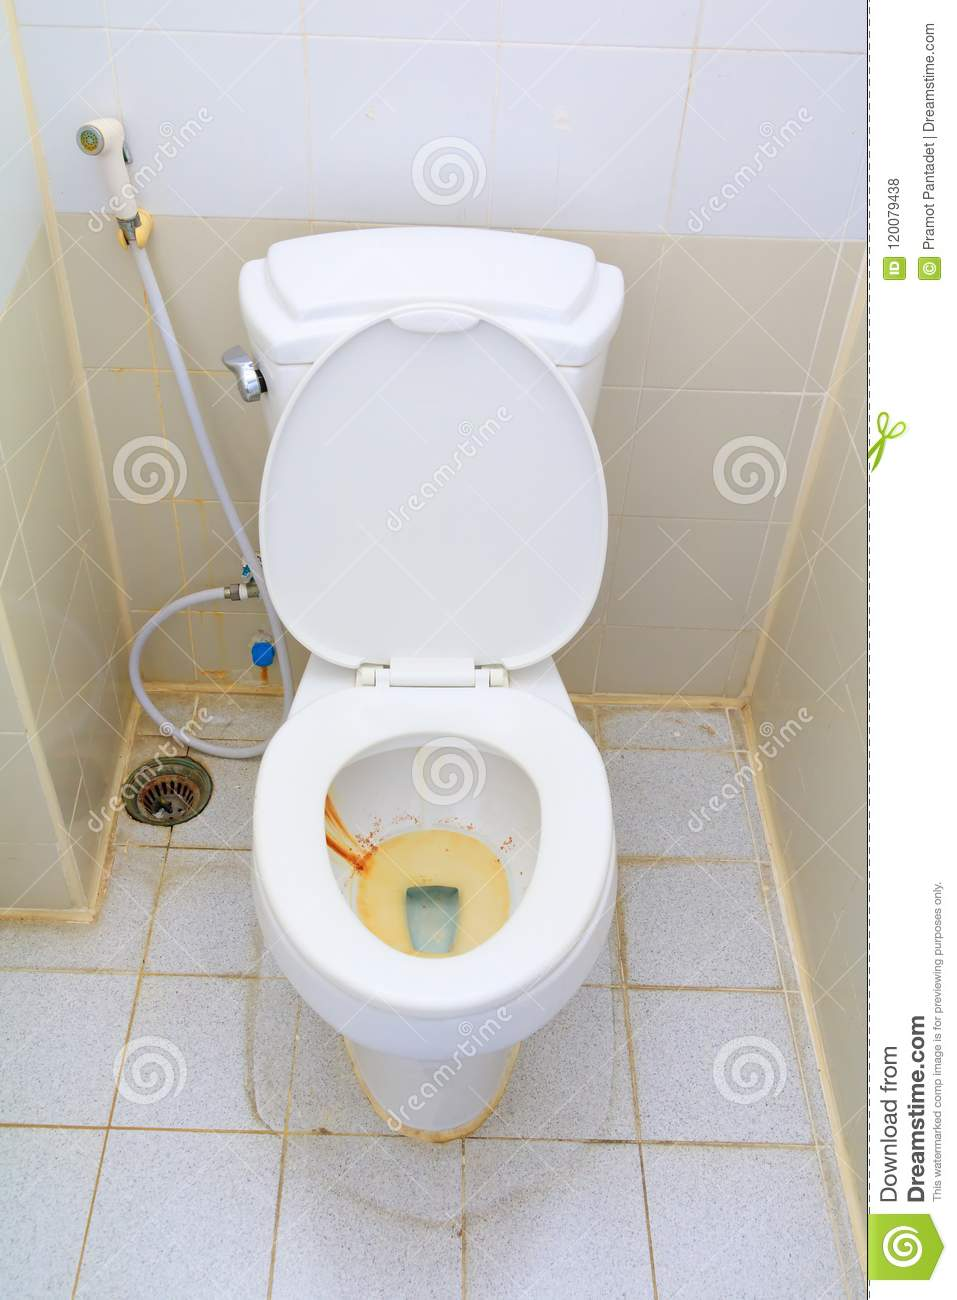 Toilet Dirty Closet Rusty Water In Public With Copy Space Stock